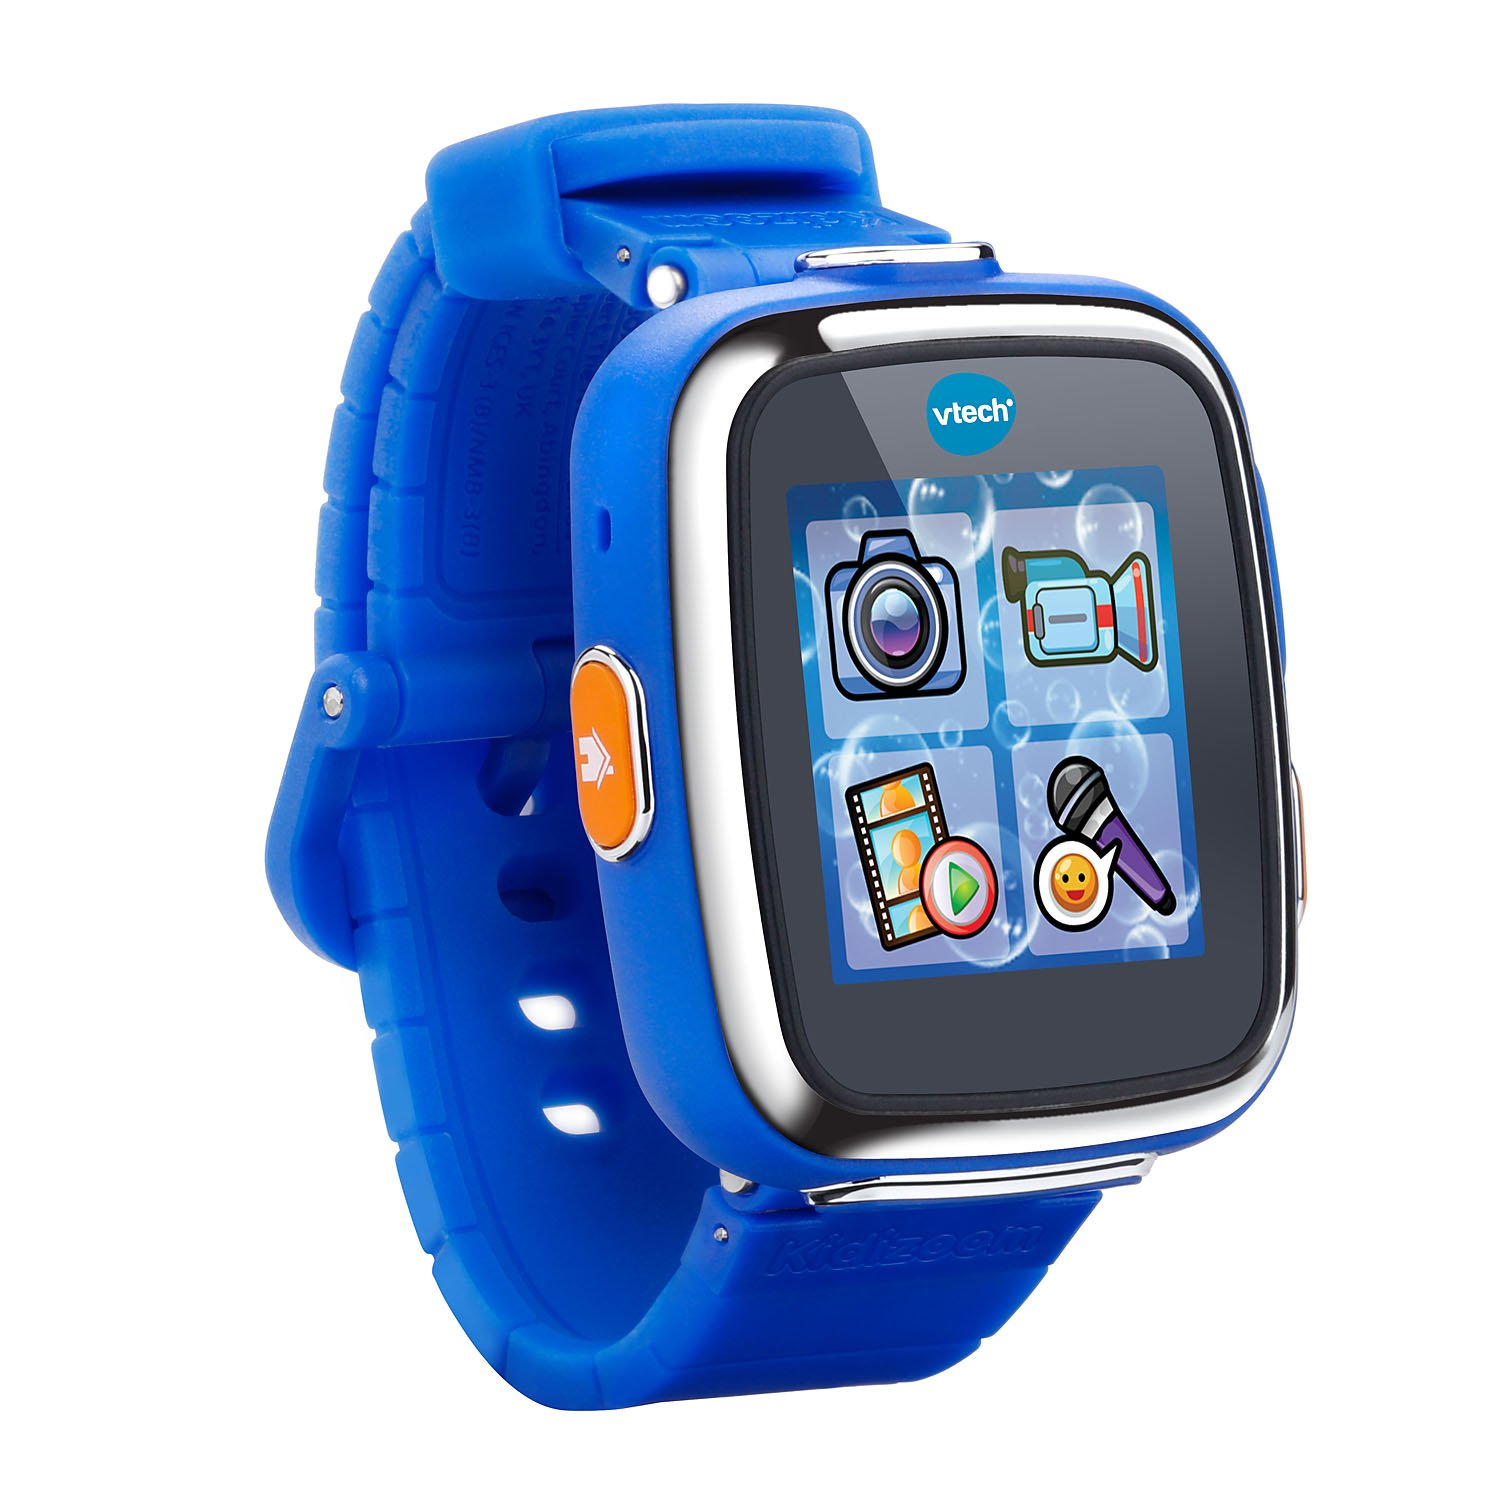 VTech Kidizoom Smartwatch DX - Royal Blue, Great Gift for Kids, Toddlers, Toy for Boys and Girls, Ages 4, 5, 6, 7, 8, 9